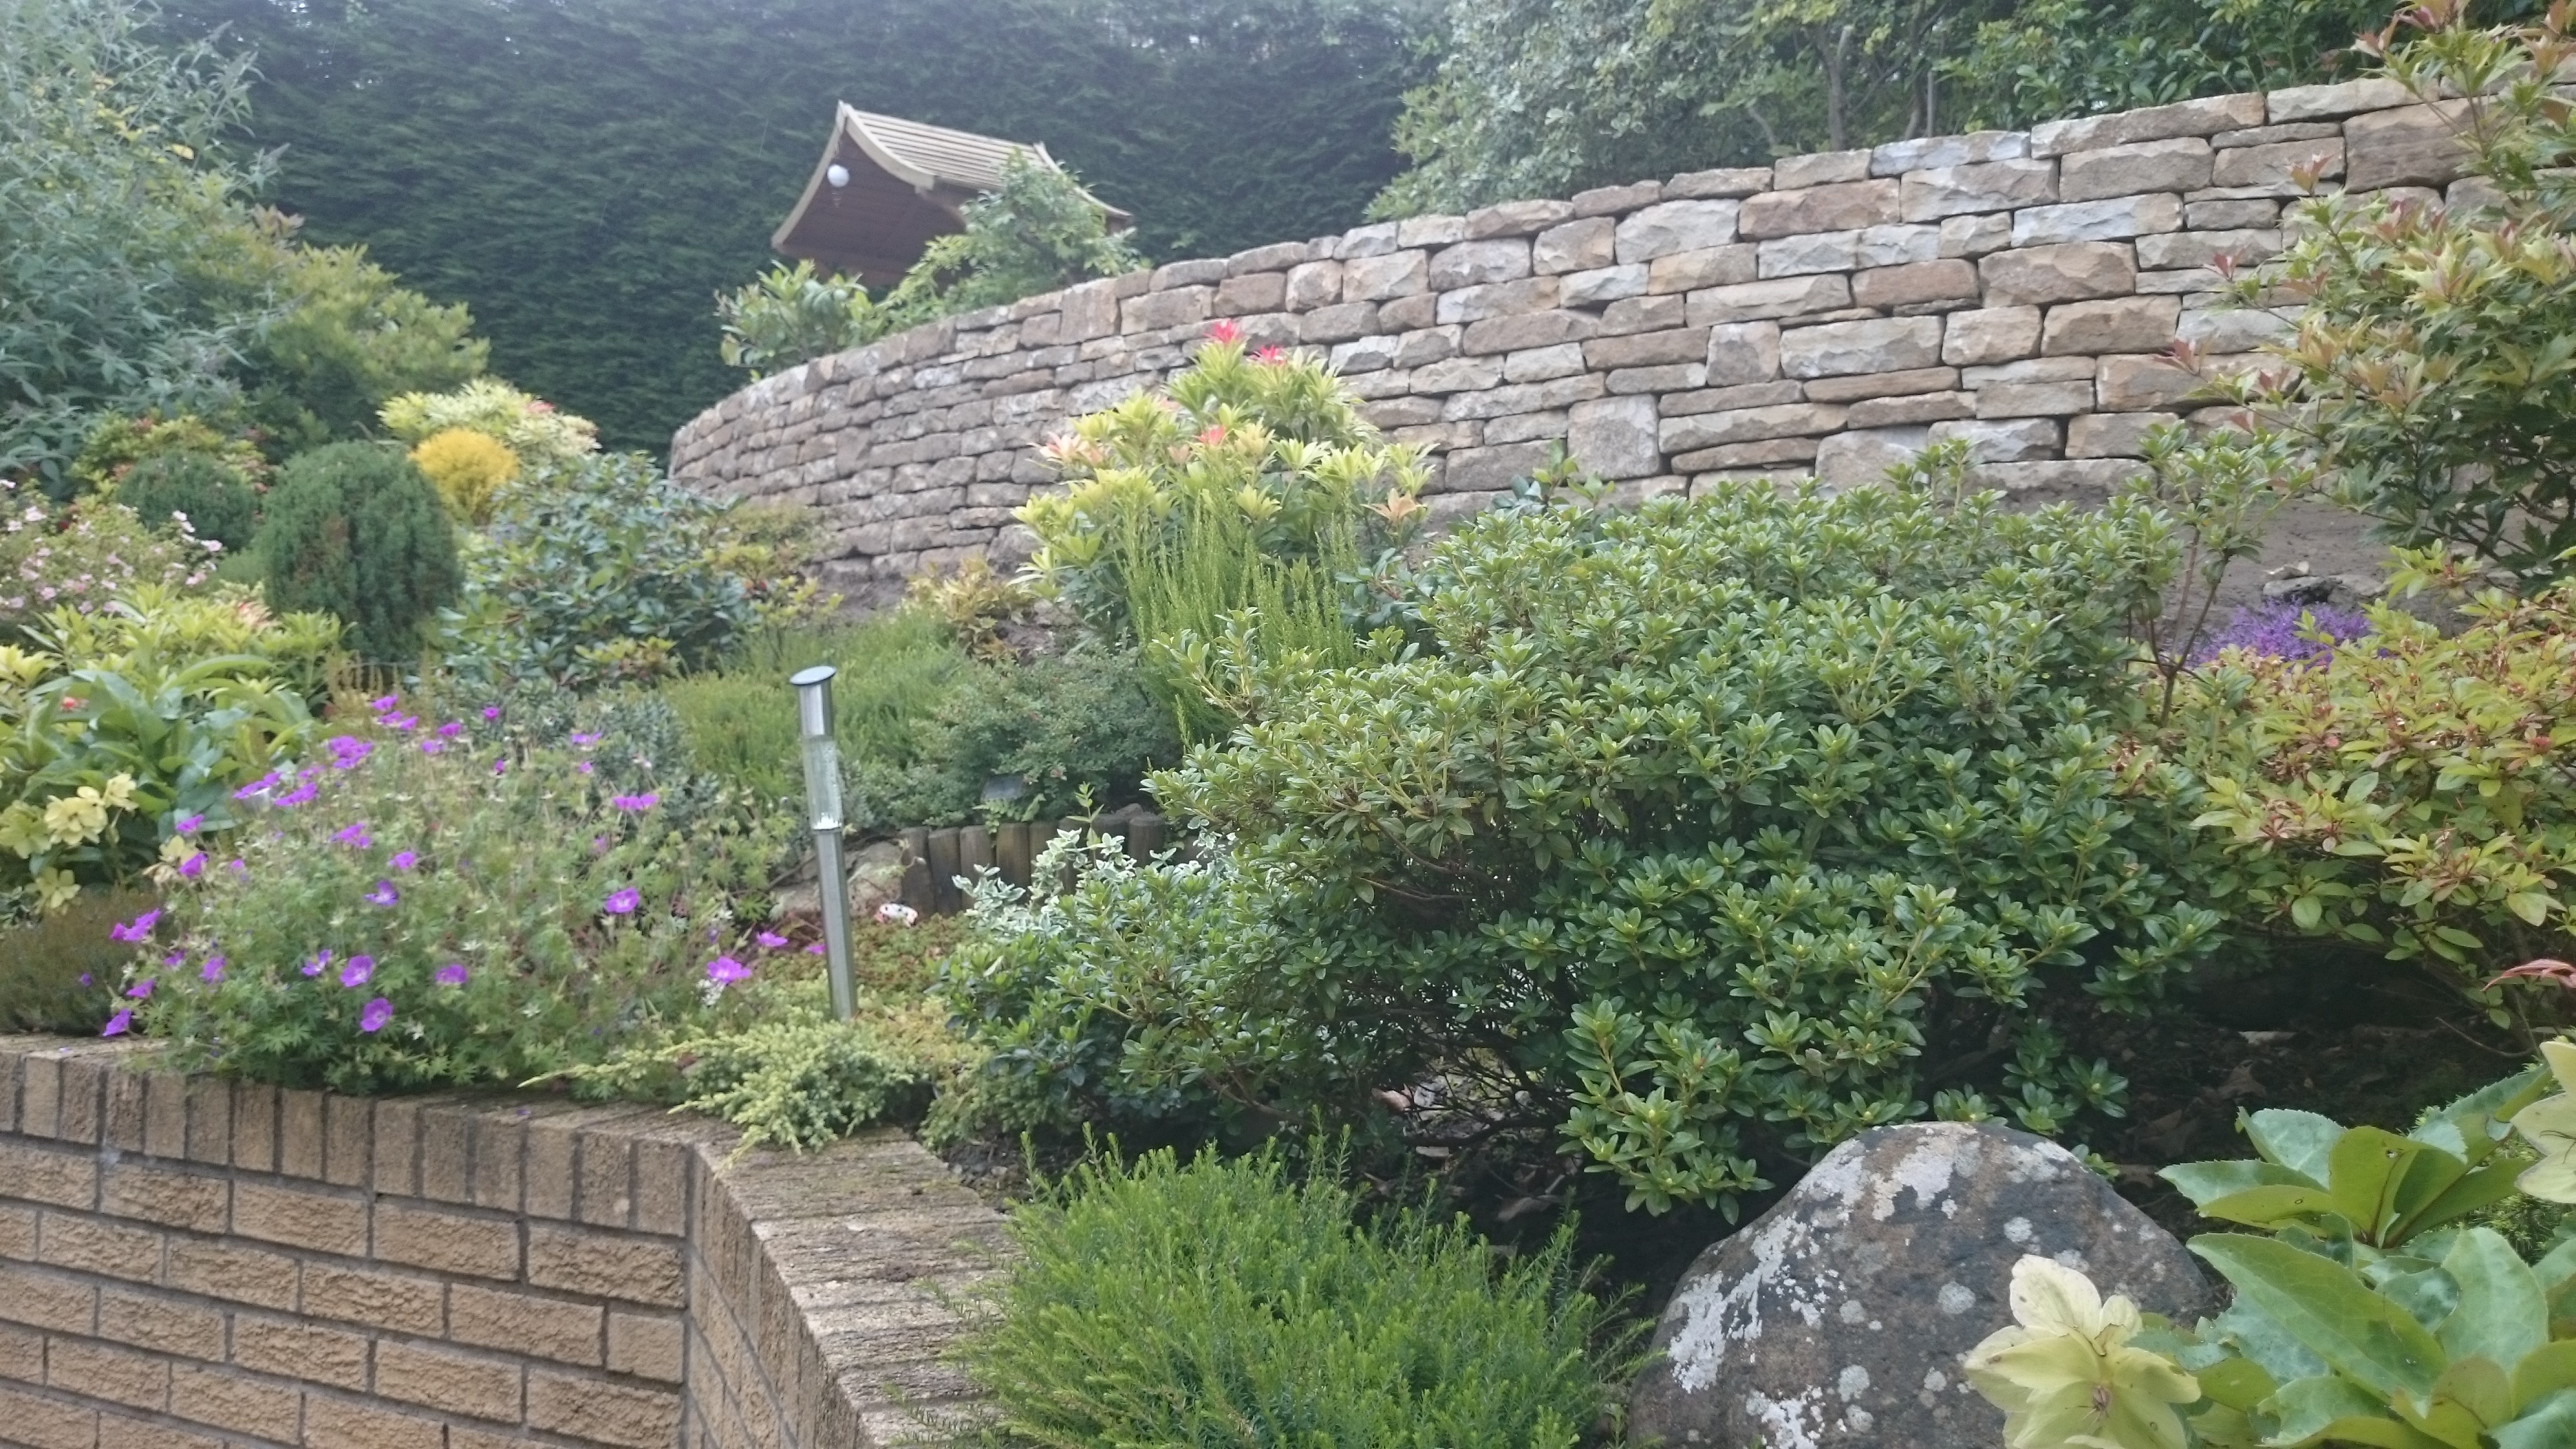 Glasgow dry stone retaining wall